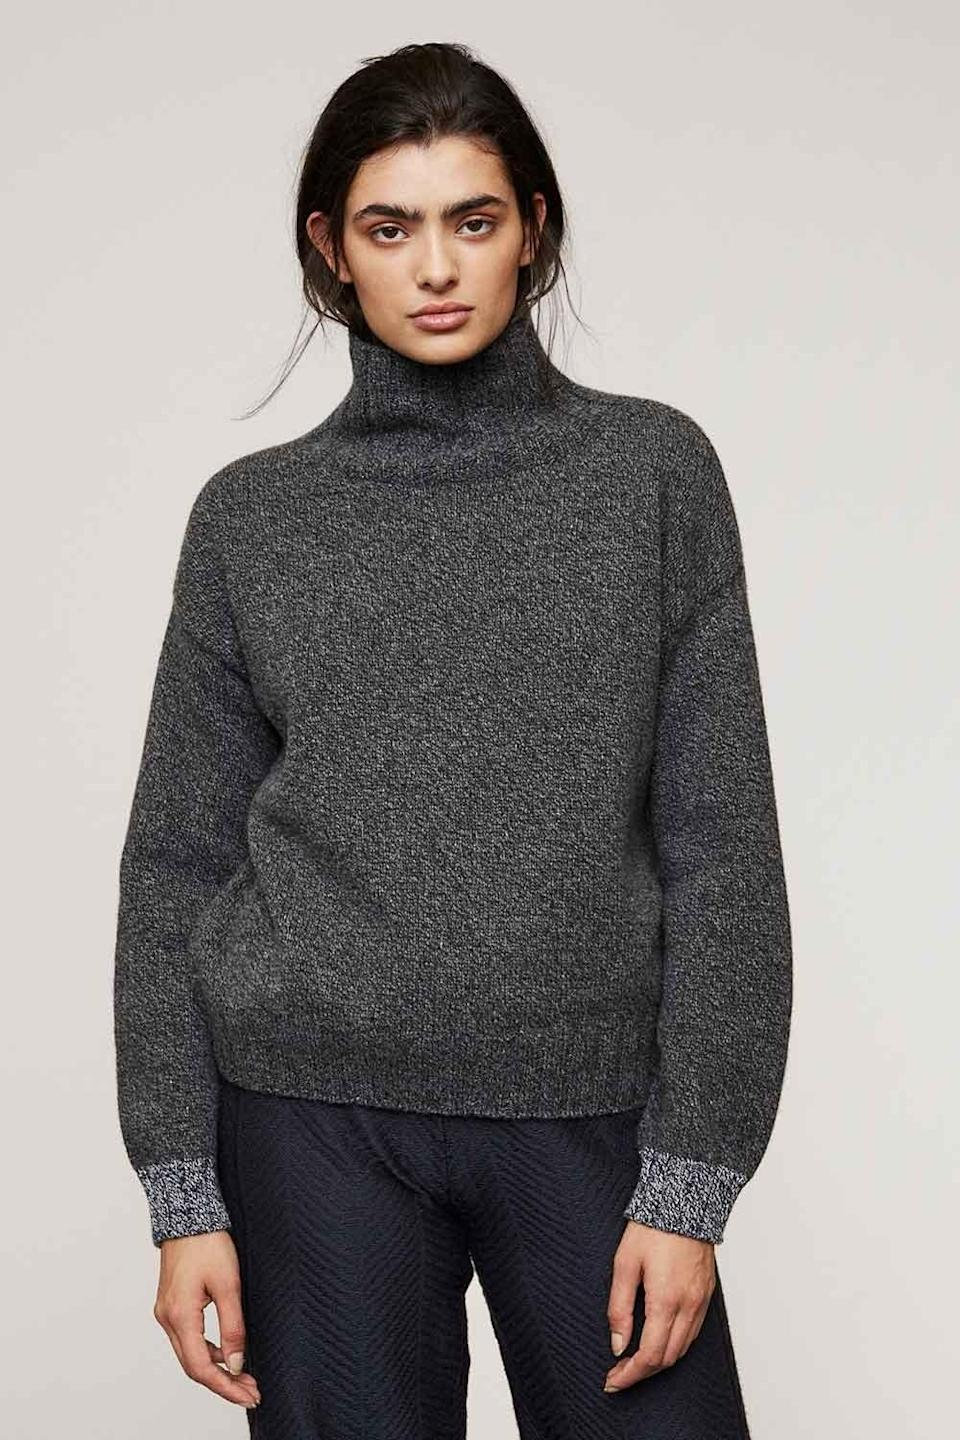 "<br><br><strong>Genevieve Sweeney</strong> Lambswool Slouch Turtleneck Jumper, $, available at <a href=""https://www.genevievesweeney.com/product/thame-lambswool-charcoal-grey/"" rel=""nofollow noopener"" target=""_blank"" data-ylk=""slk:Genevieve Sweeney"" class=""link rapid-noclick-resp"">Genevieve Sweeney</a>"